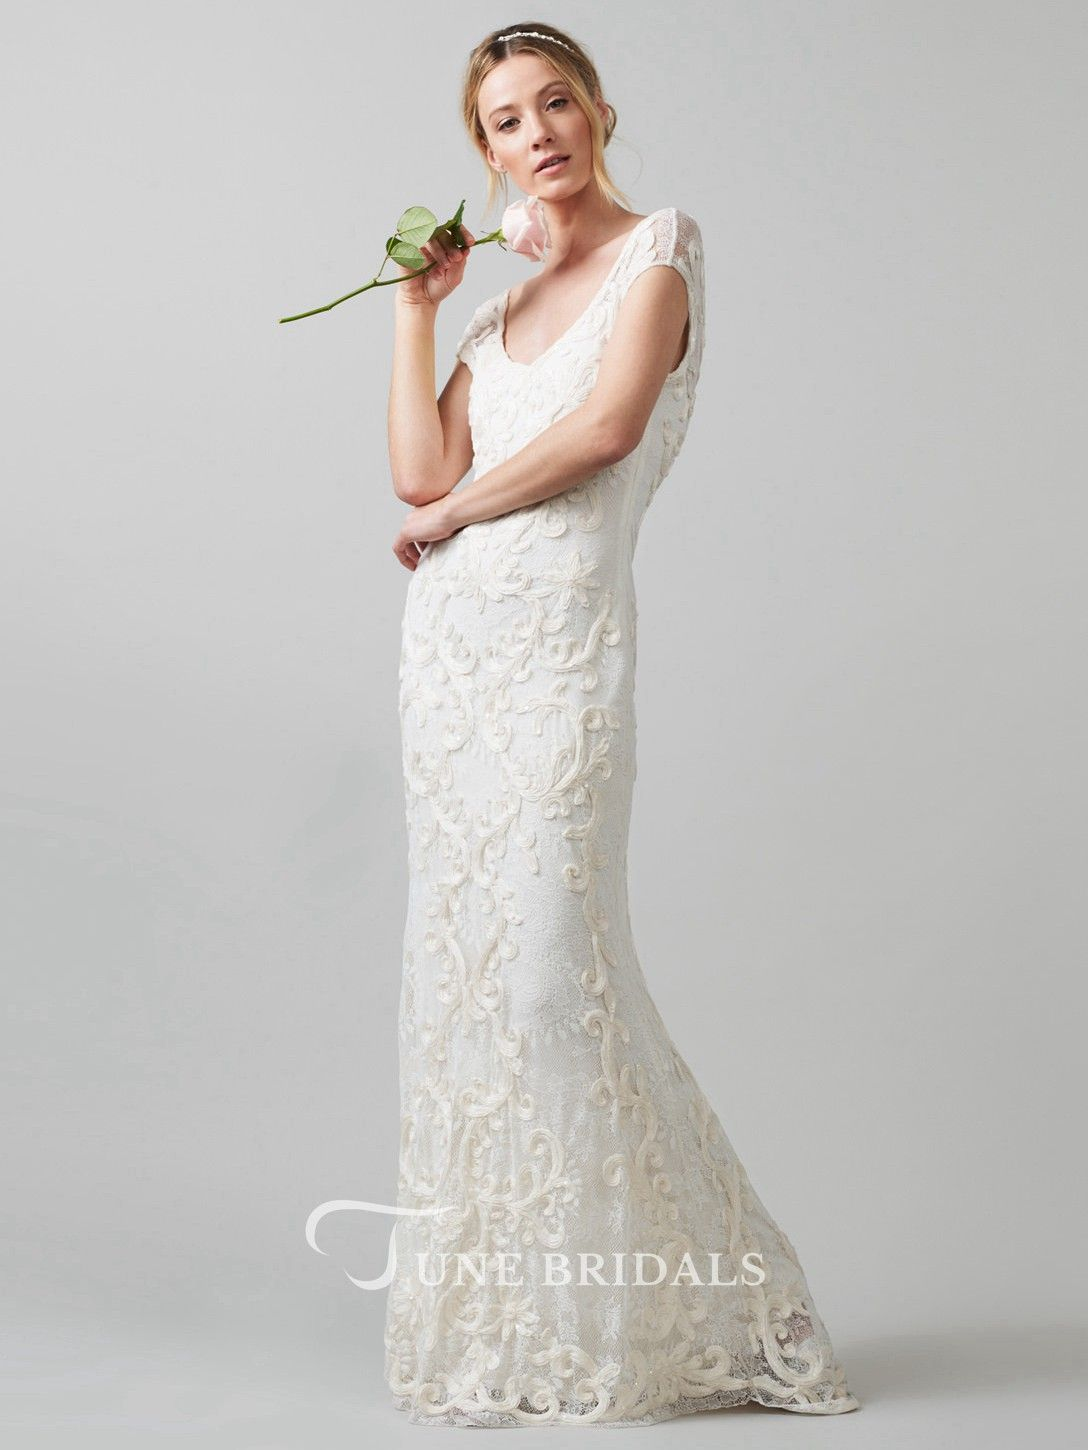 Sheath vneck capsleeve lace wedding dress with embroidery